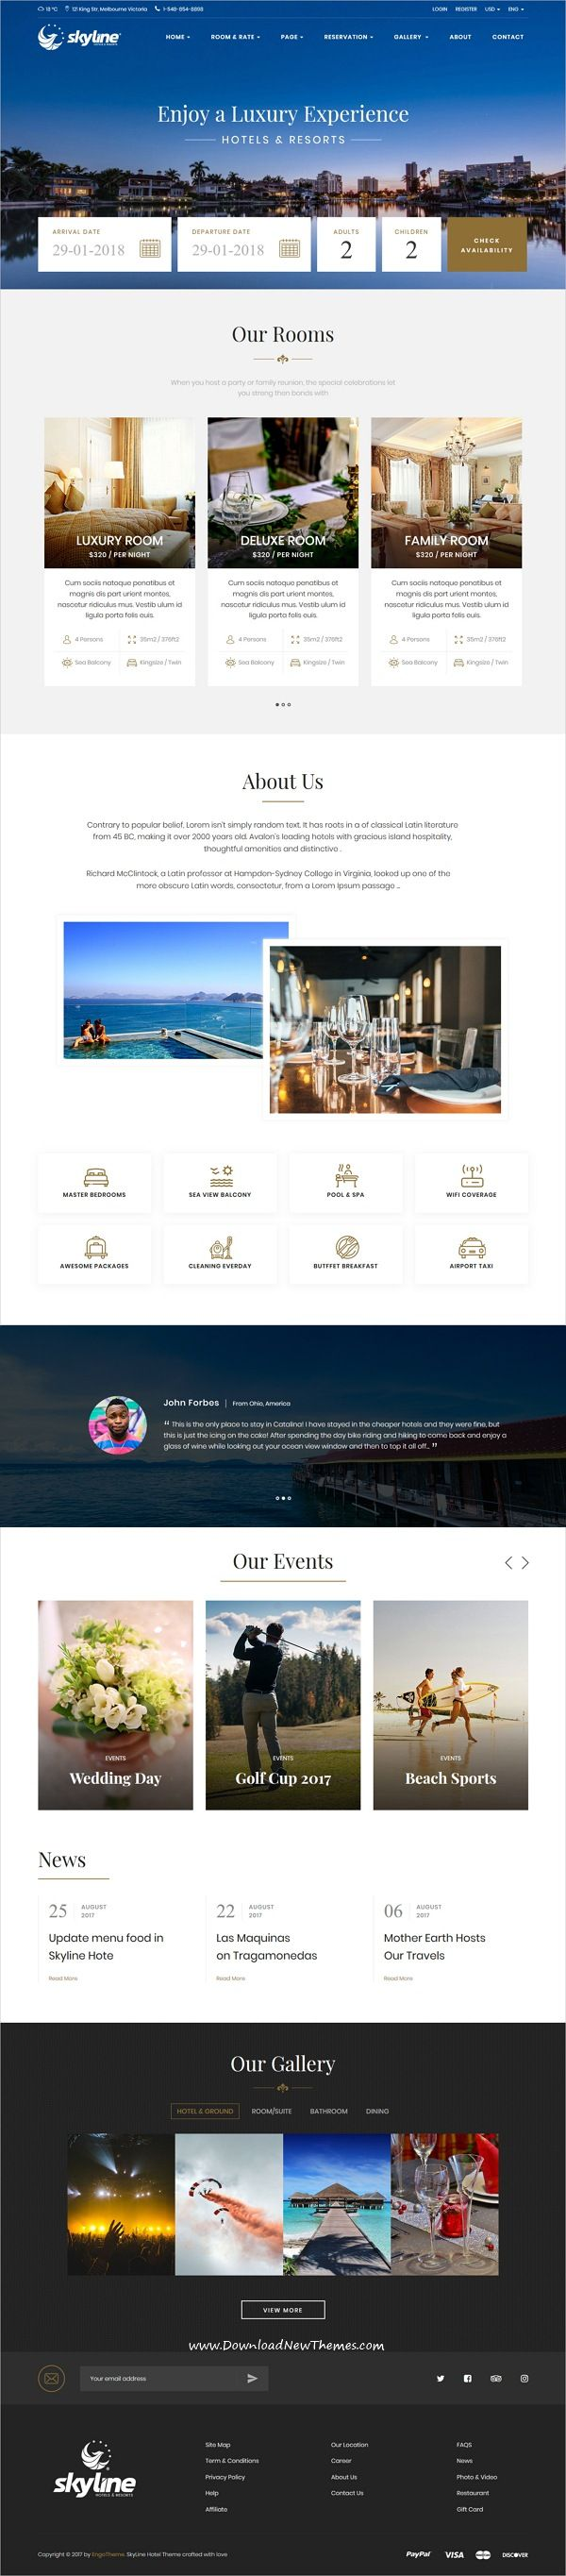 SkyLine is clean and modern design 4in1 responsive #HTML bootstrap template for beautiful #hotel and #resorts online booking #website to live preview & download click on Visit